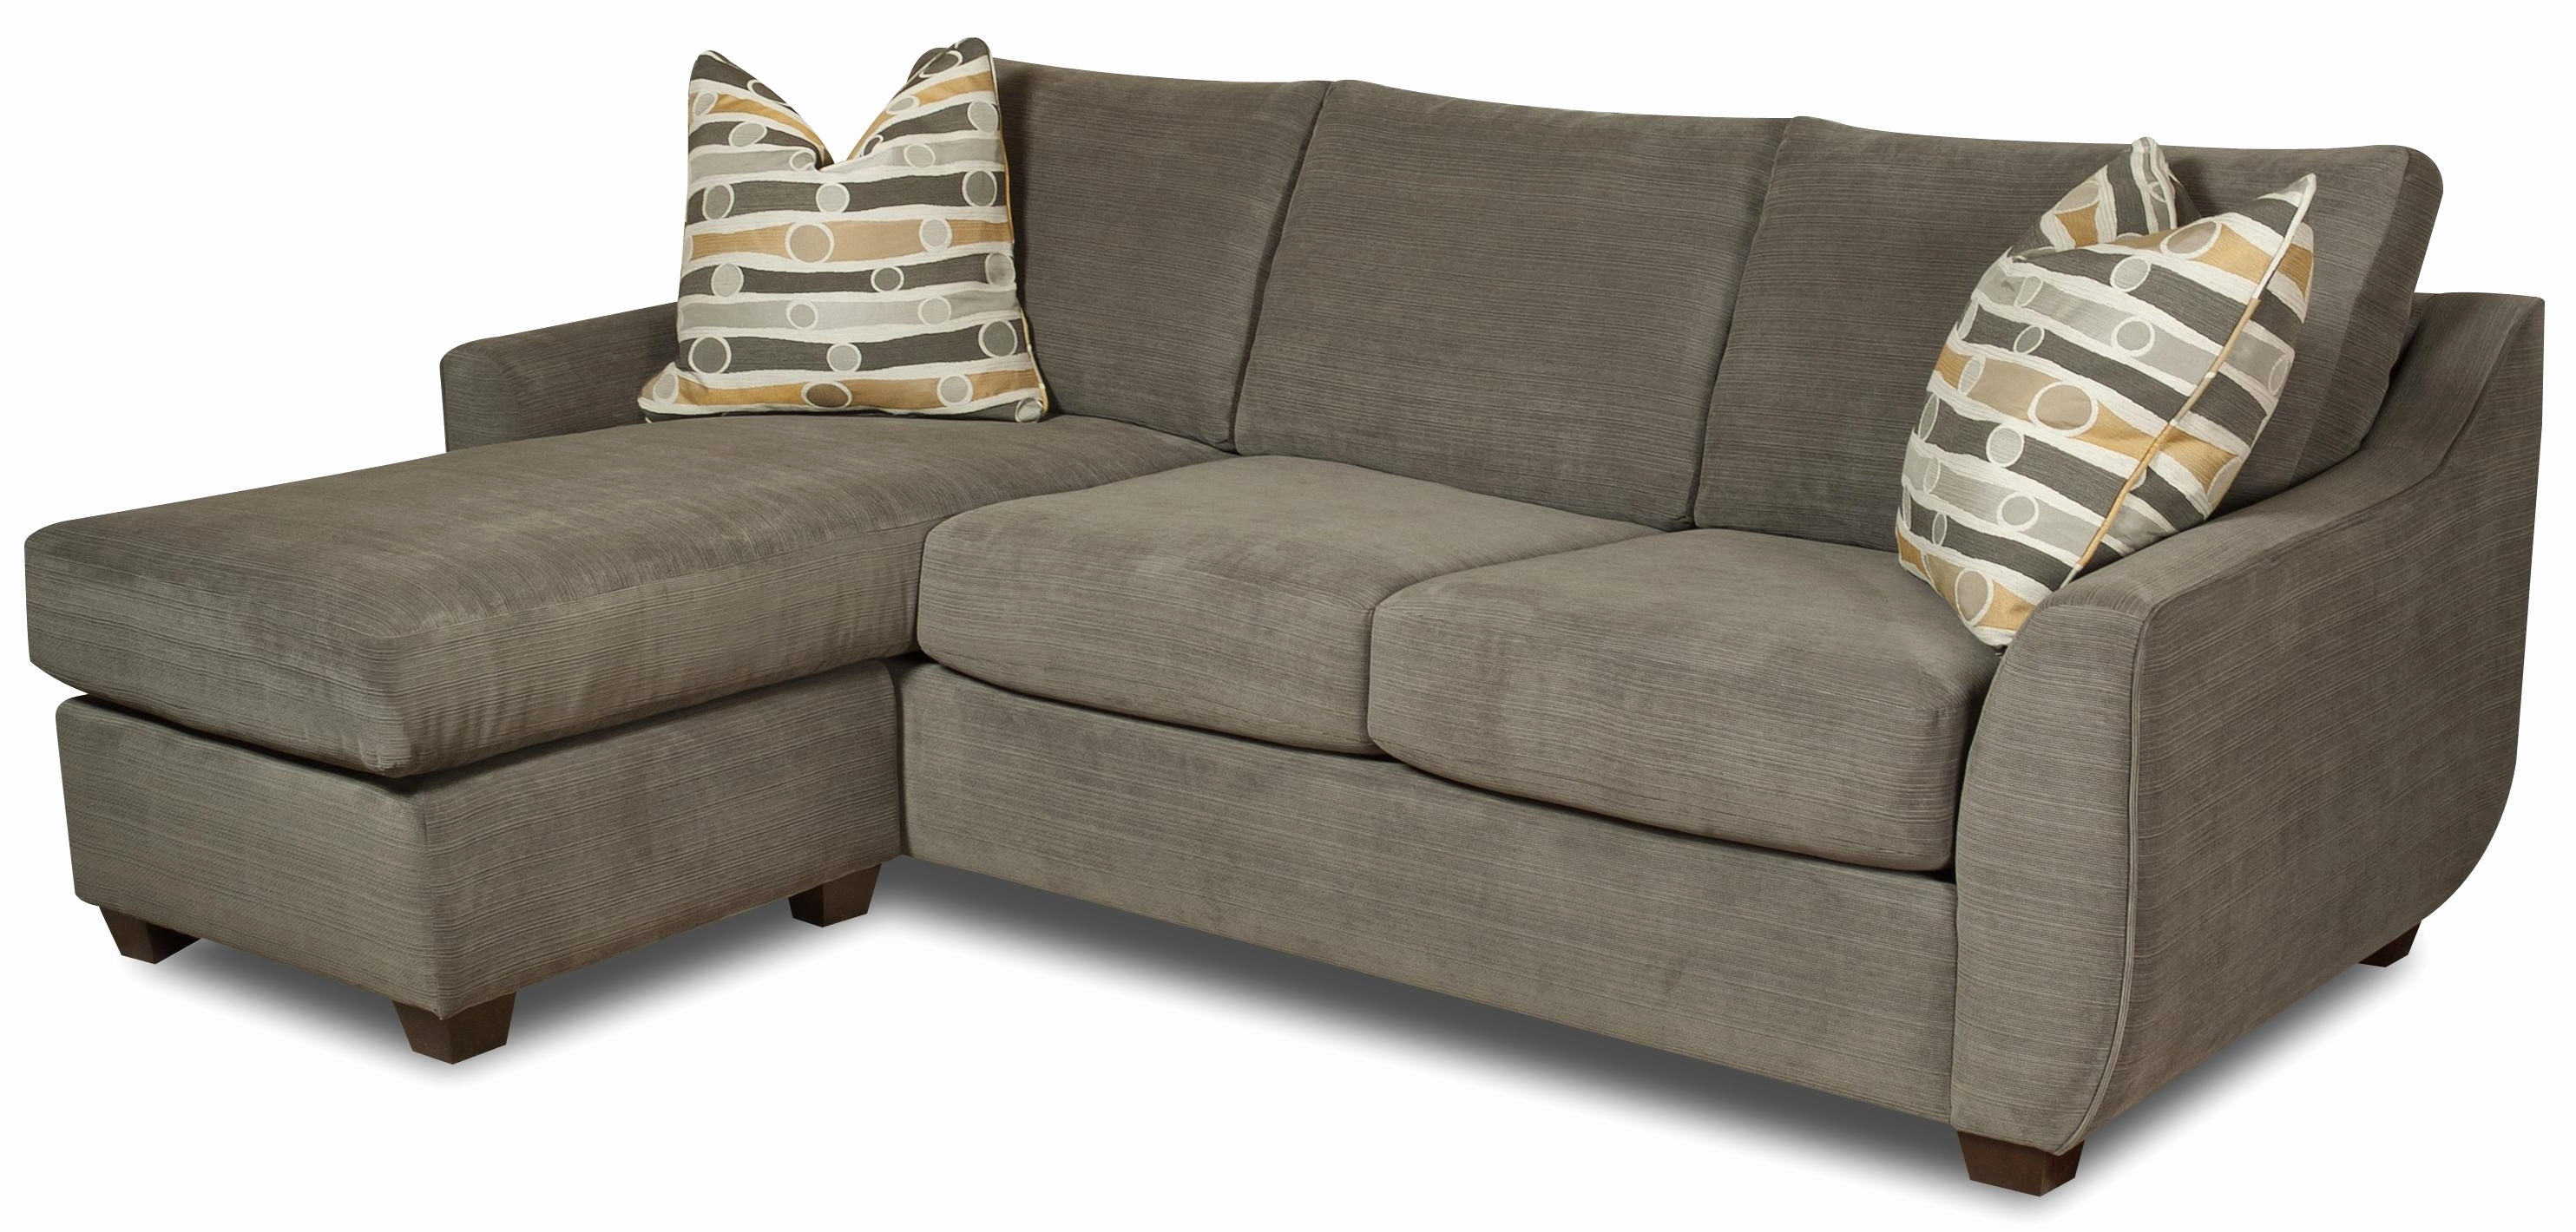 Well Known Elegant Sectional Sofas Intended For Furniture : Convertible Sectional Sleeper Sofa Elegant Bauhaus In (View 14 of 15)